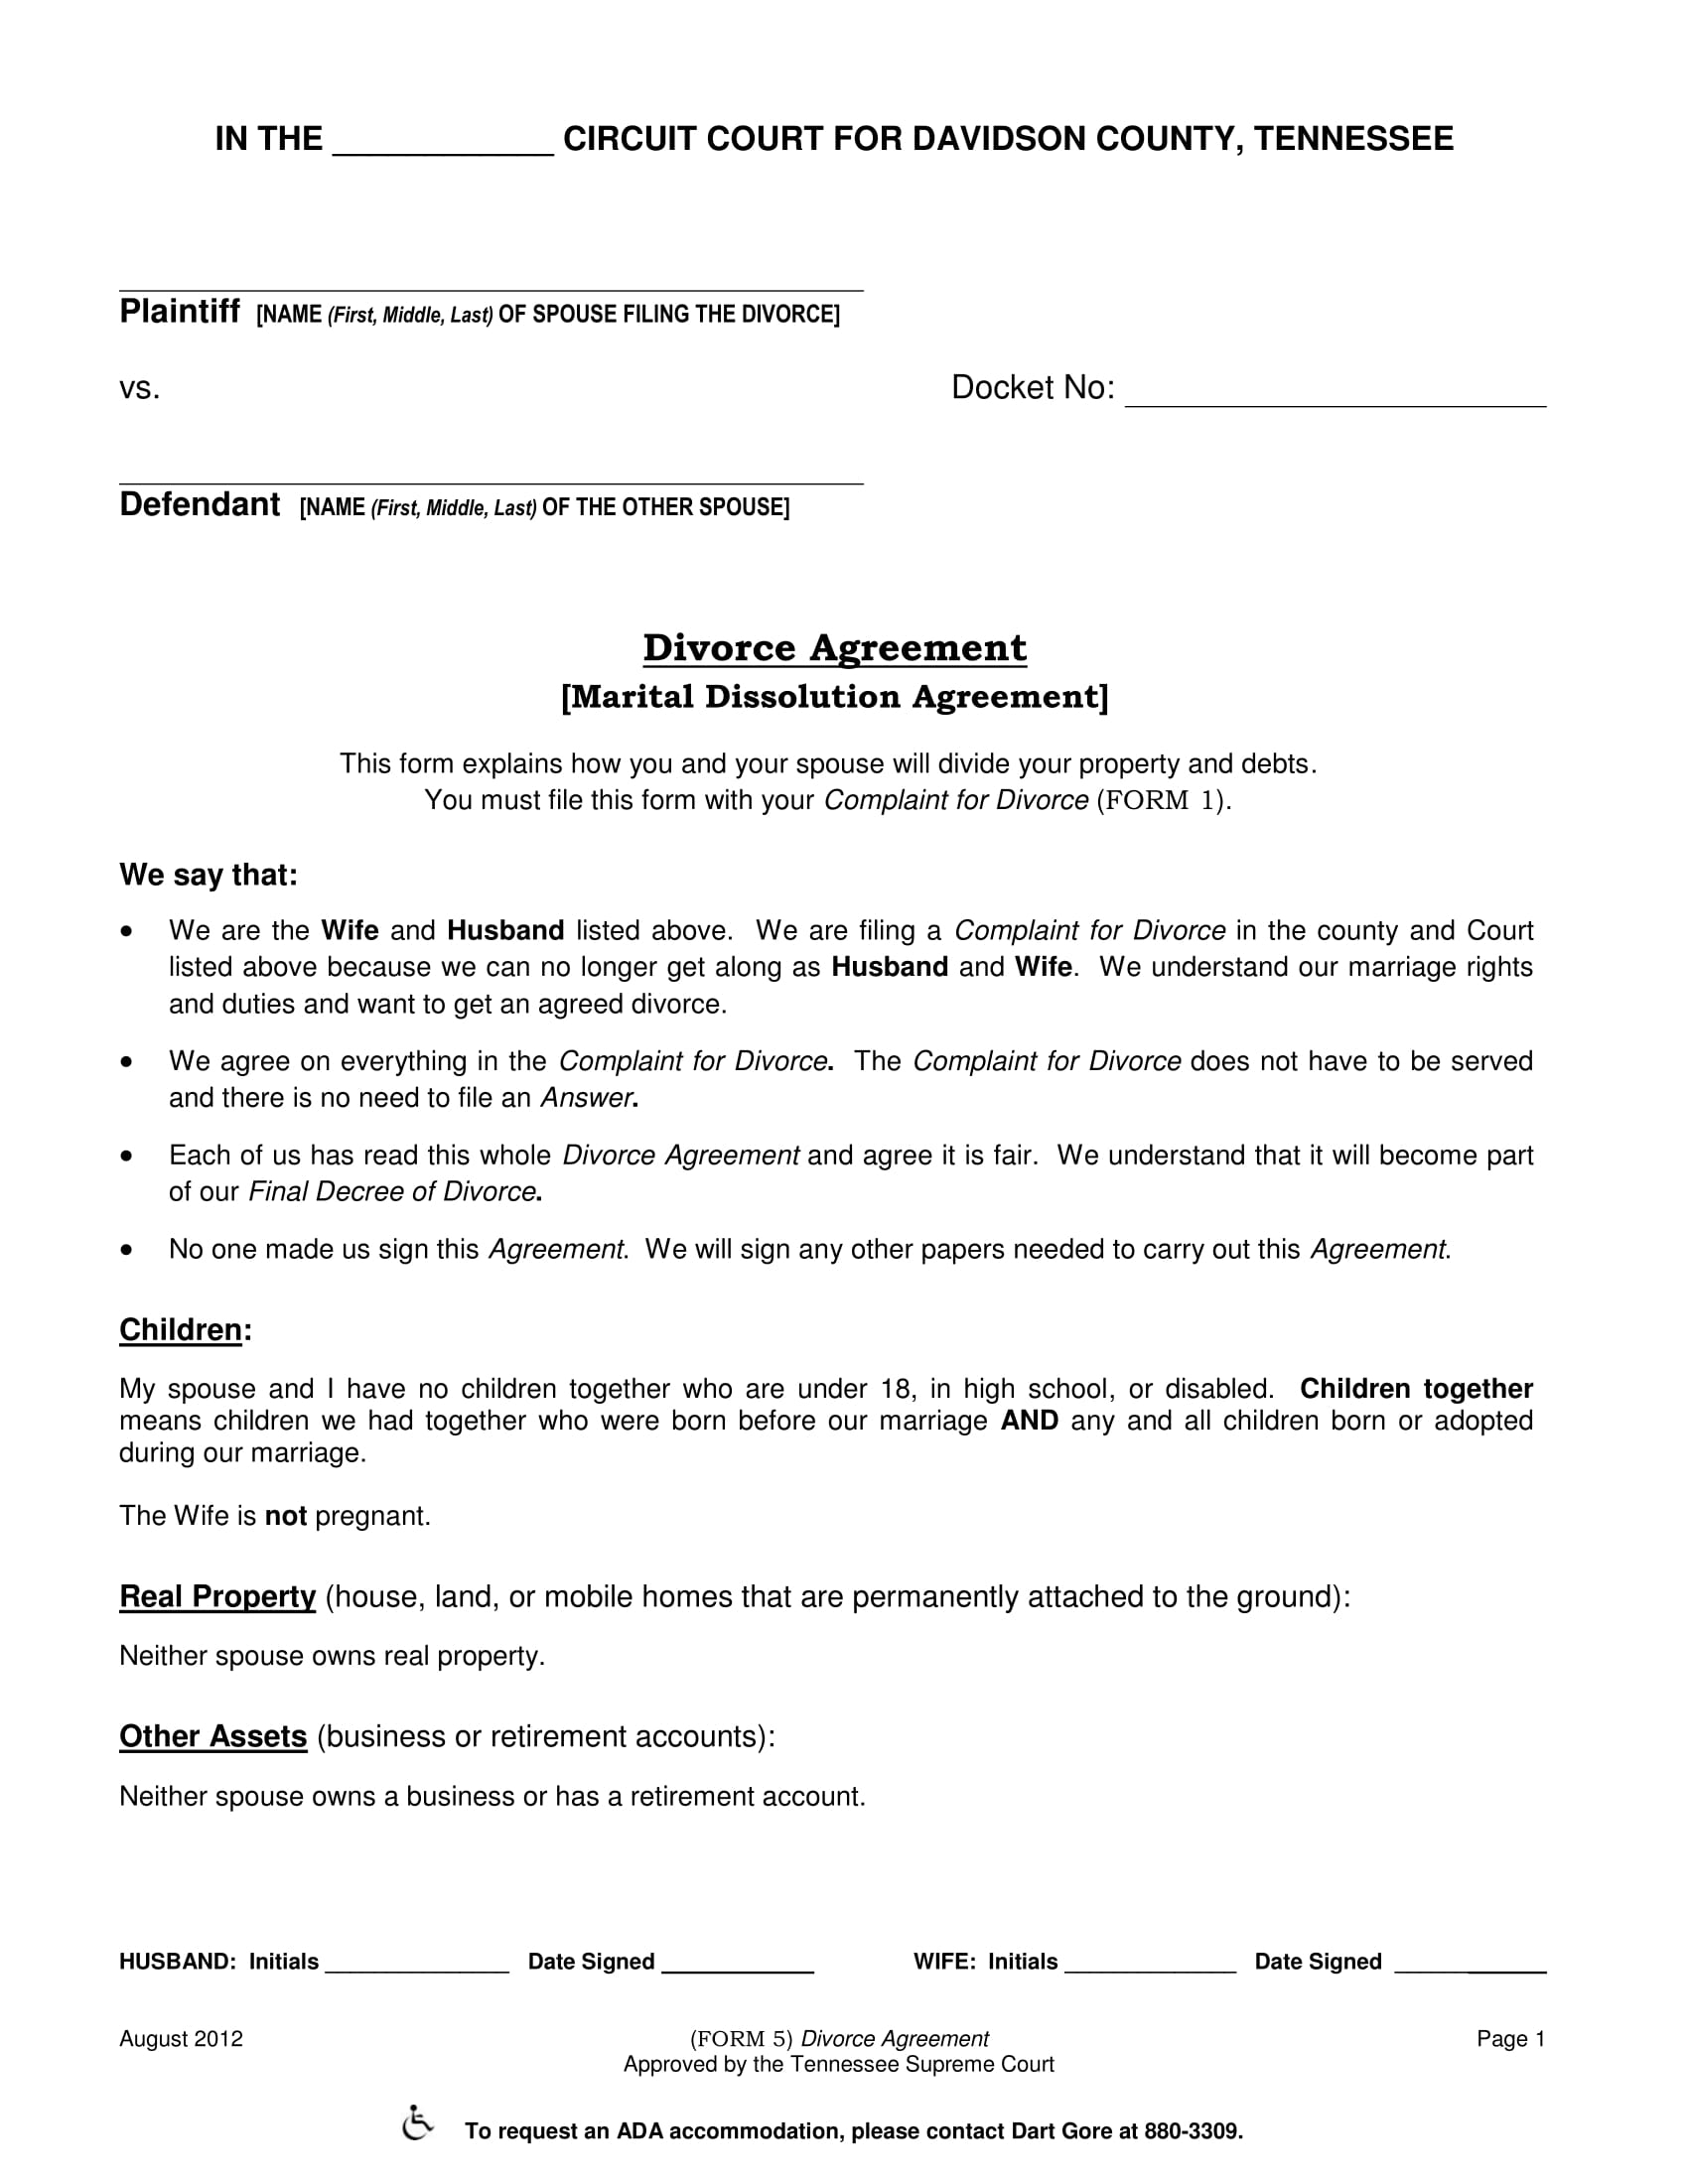 Do it yourself divorce forms for uncontested divorce 9086313 vdyufo tagsdo it yourself divorce forms for uncontested divorcetxdivorceorg online texas divorce forms and papersfree texas online printable divorce papers and solutioingenieria Image collections